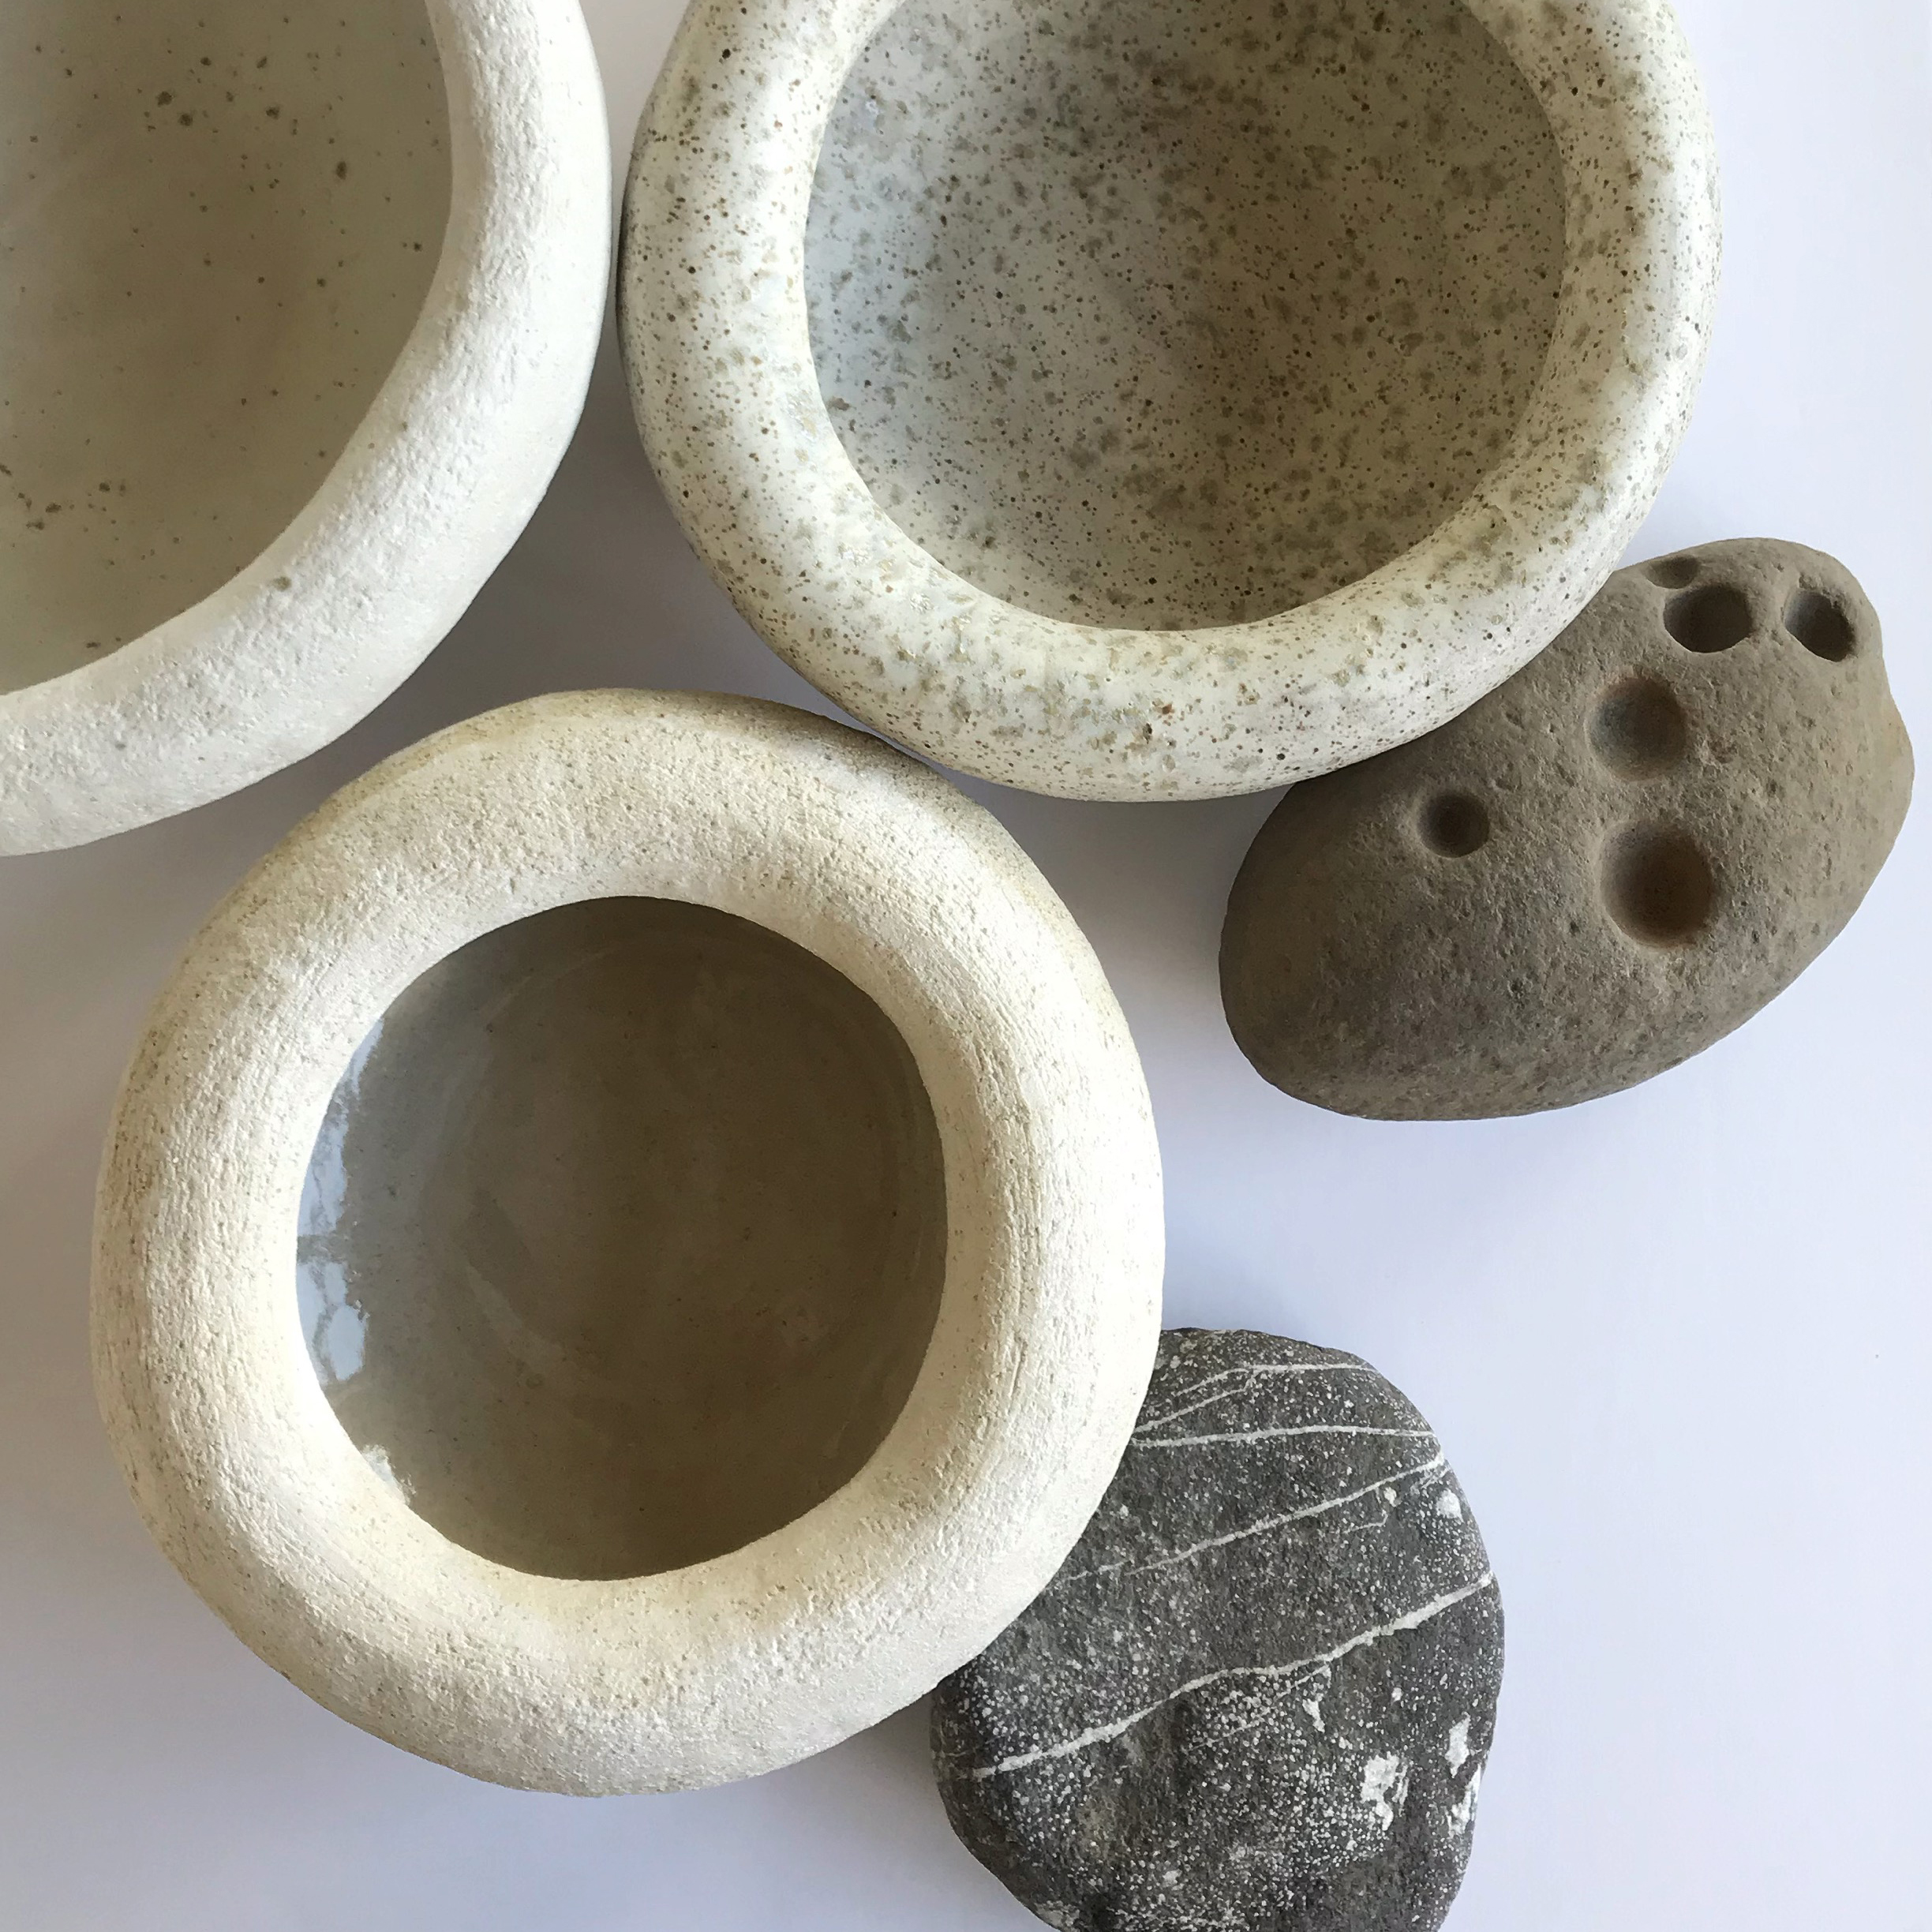 """ROLY POLY BOWL  hand build stoneware bowl - available in salt, freckle or dough  measures approx. 9.5"""" in diameter, stands approx. 4"""" tall $60 Wholesale 